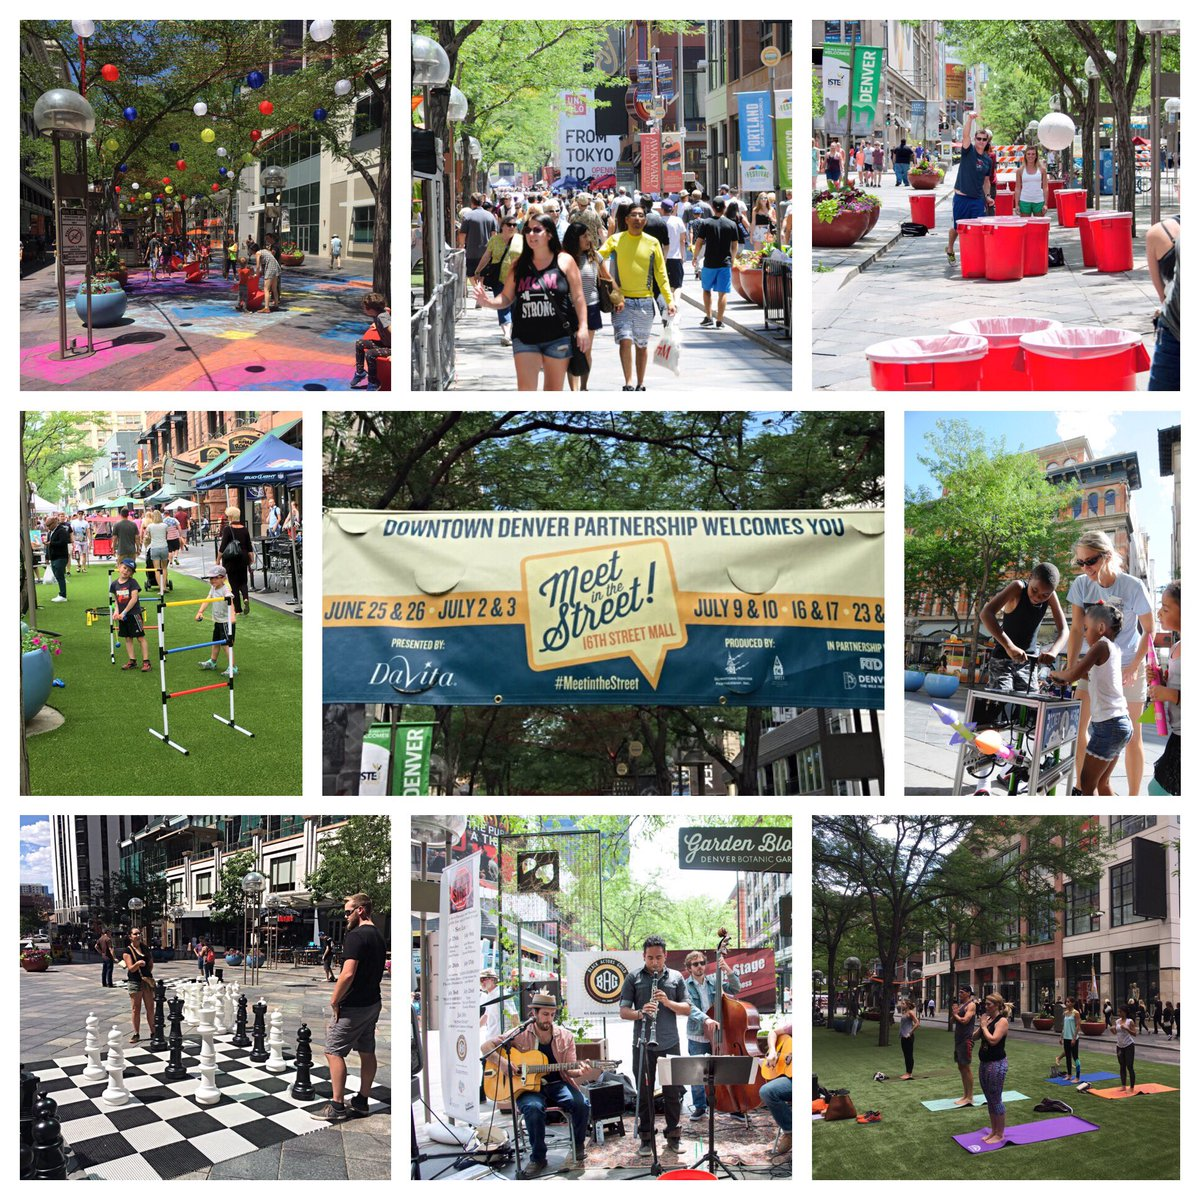 That's a wrap! Thanks for joining us for 5 amazing weekends of MeetintheStreet to reimagine the 16thStreetMall!